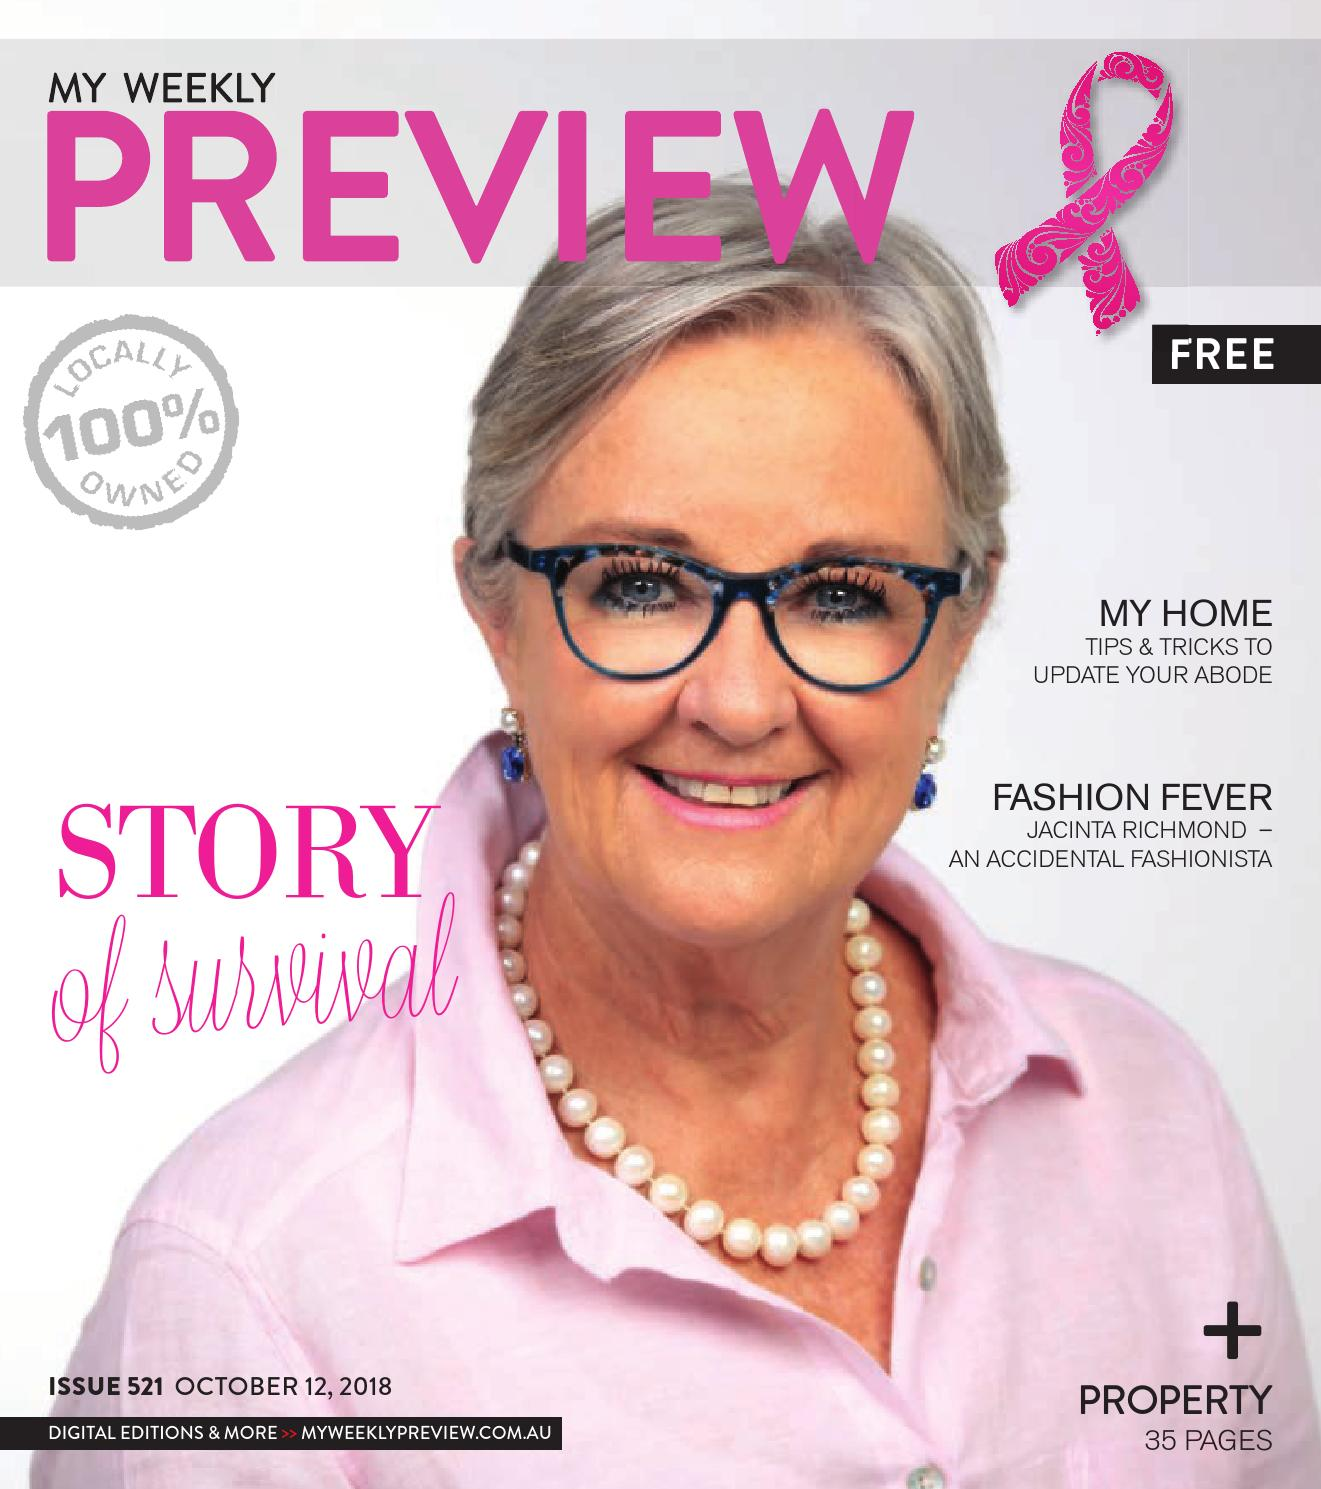 My Weekly Preview Issue 521 by My Weekly Preview - issuu 9d70f97adb